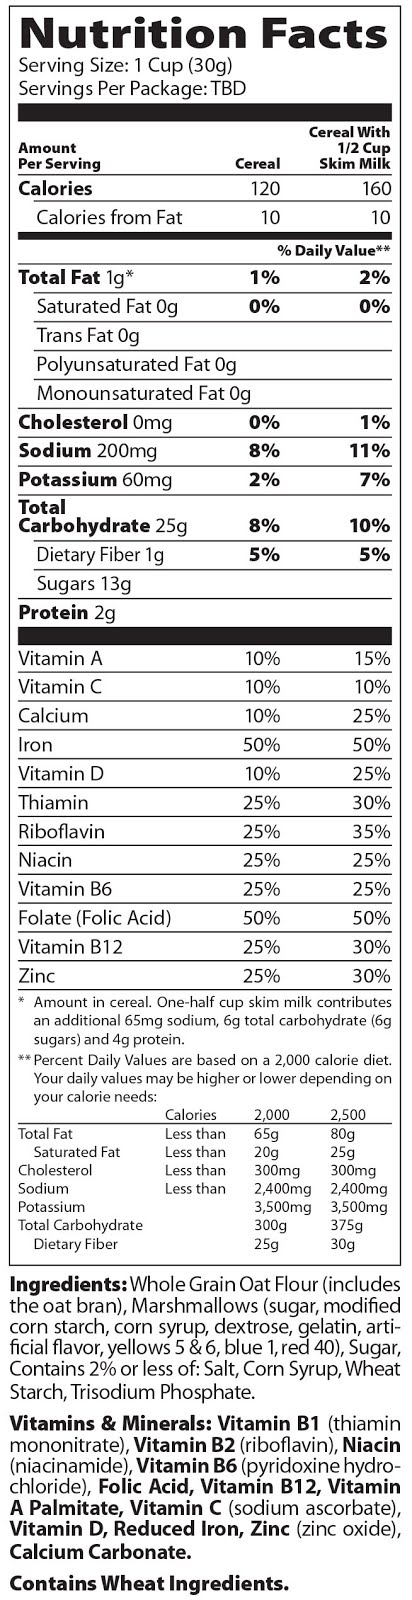 33 Lucky Charms Nutrition Facts Label Labels Database 2020